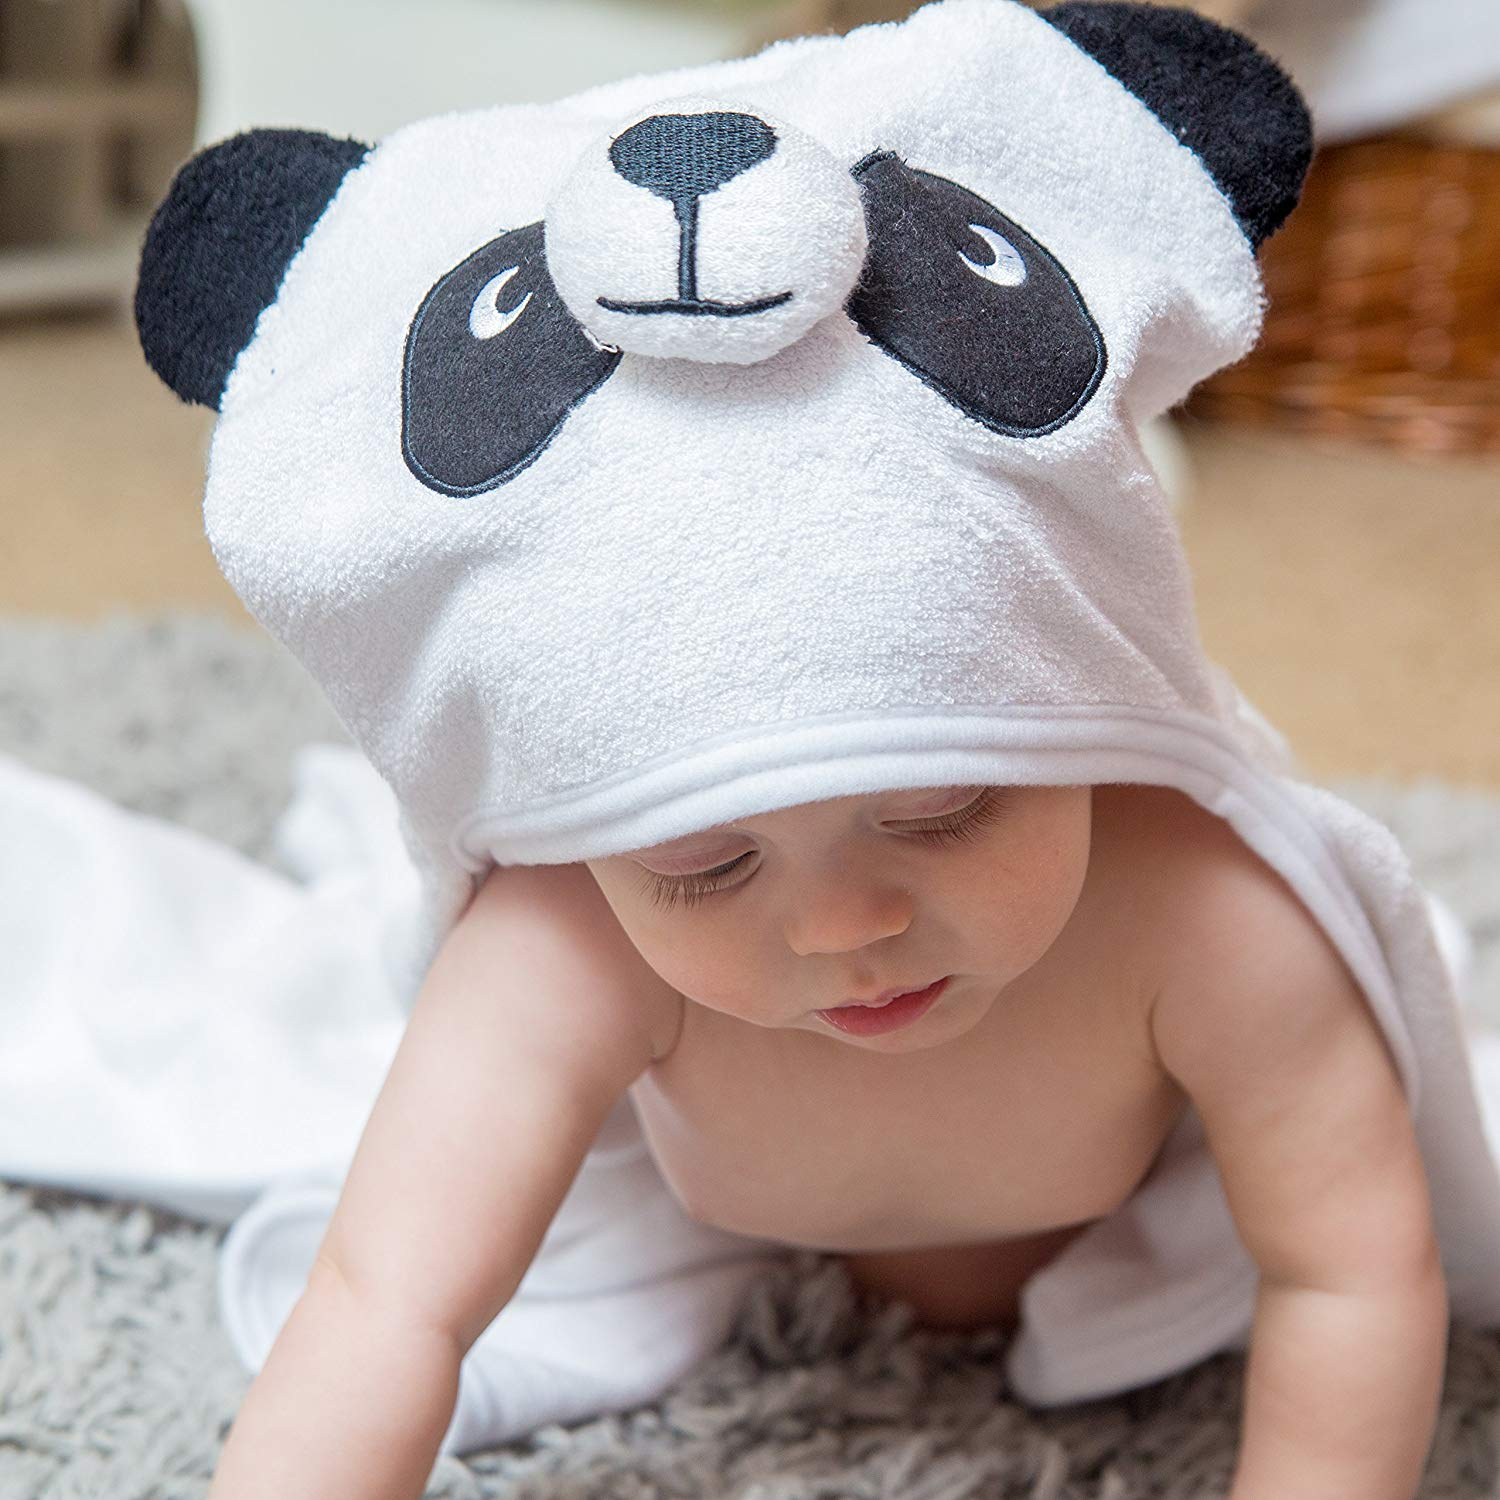 Bamboo Panda Hooded Baby Towel 100 Organic Unisex Towel Highly Absorbent And Super Soft Bath Towel For The Pool An B071G2C4Z9 3